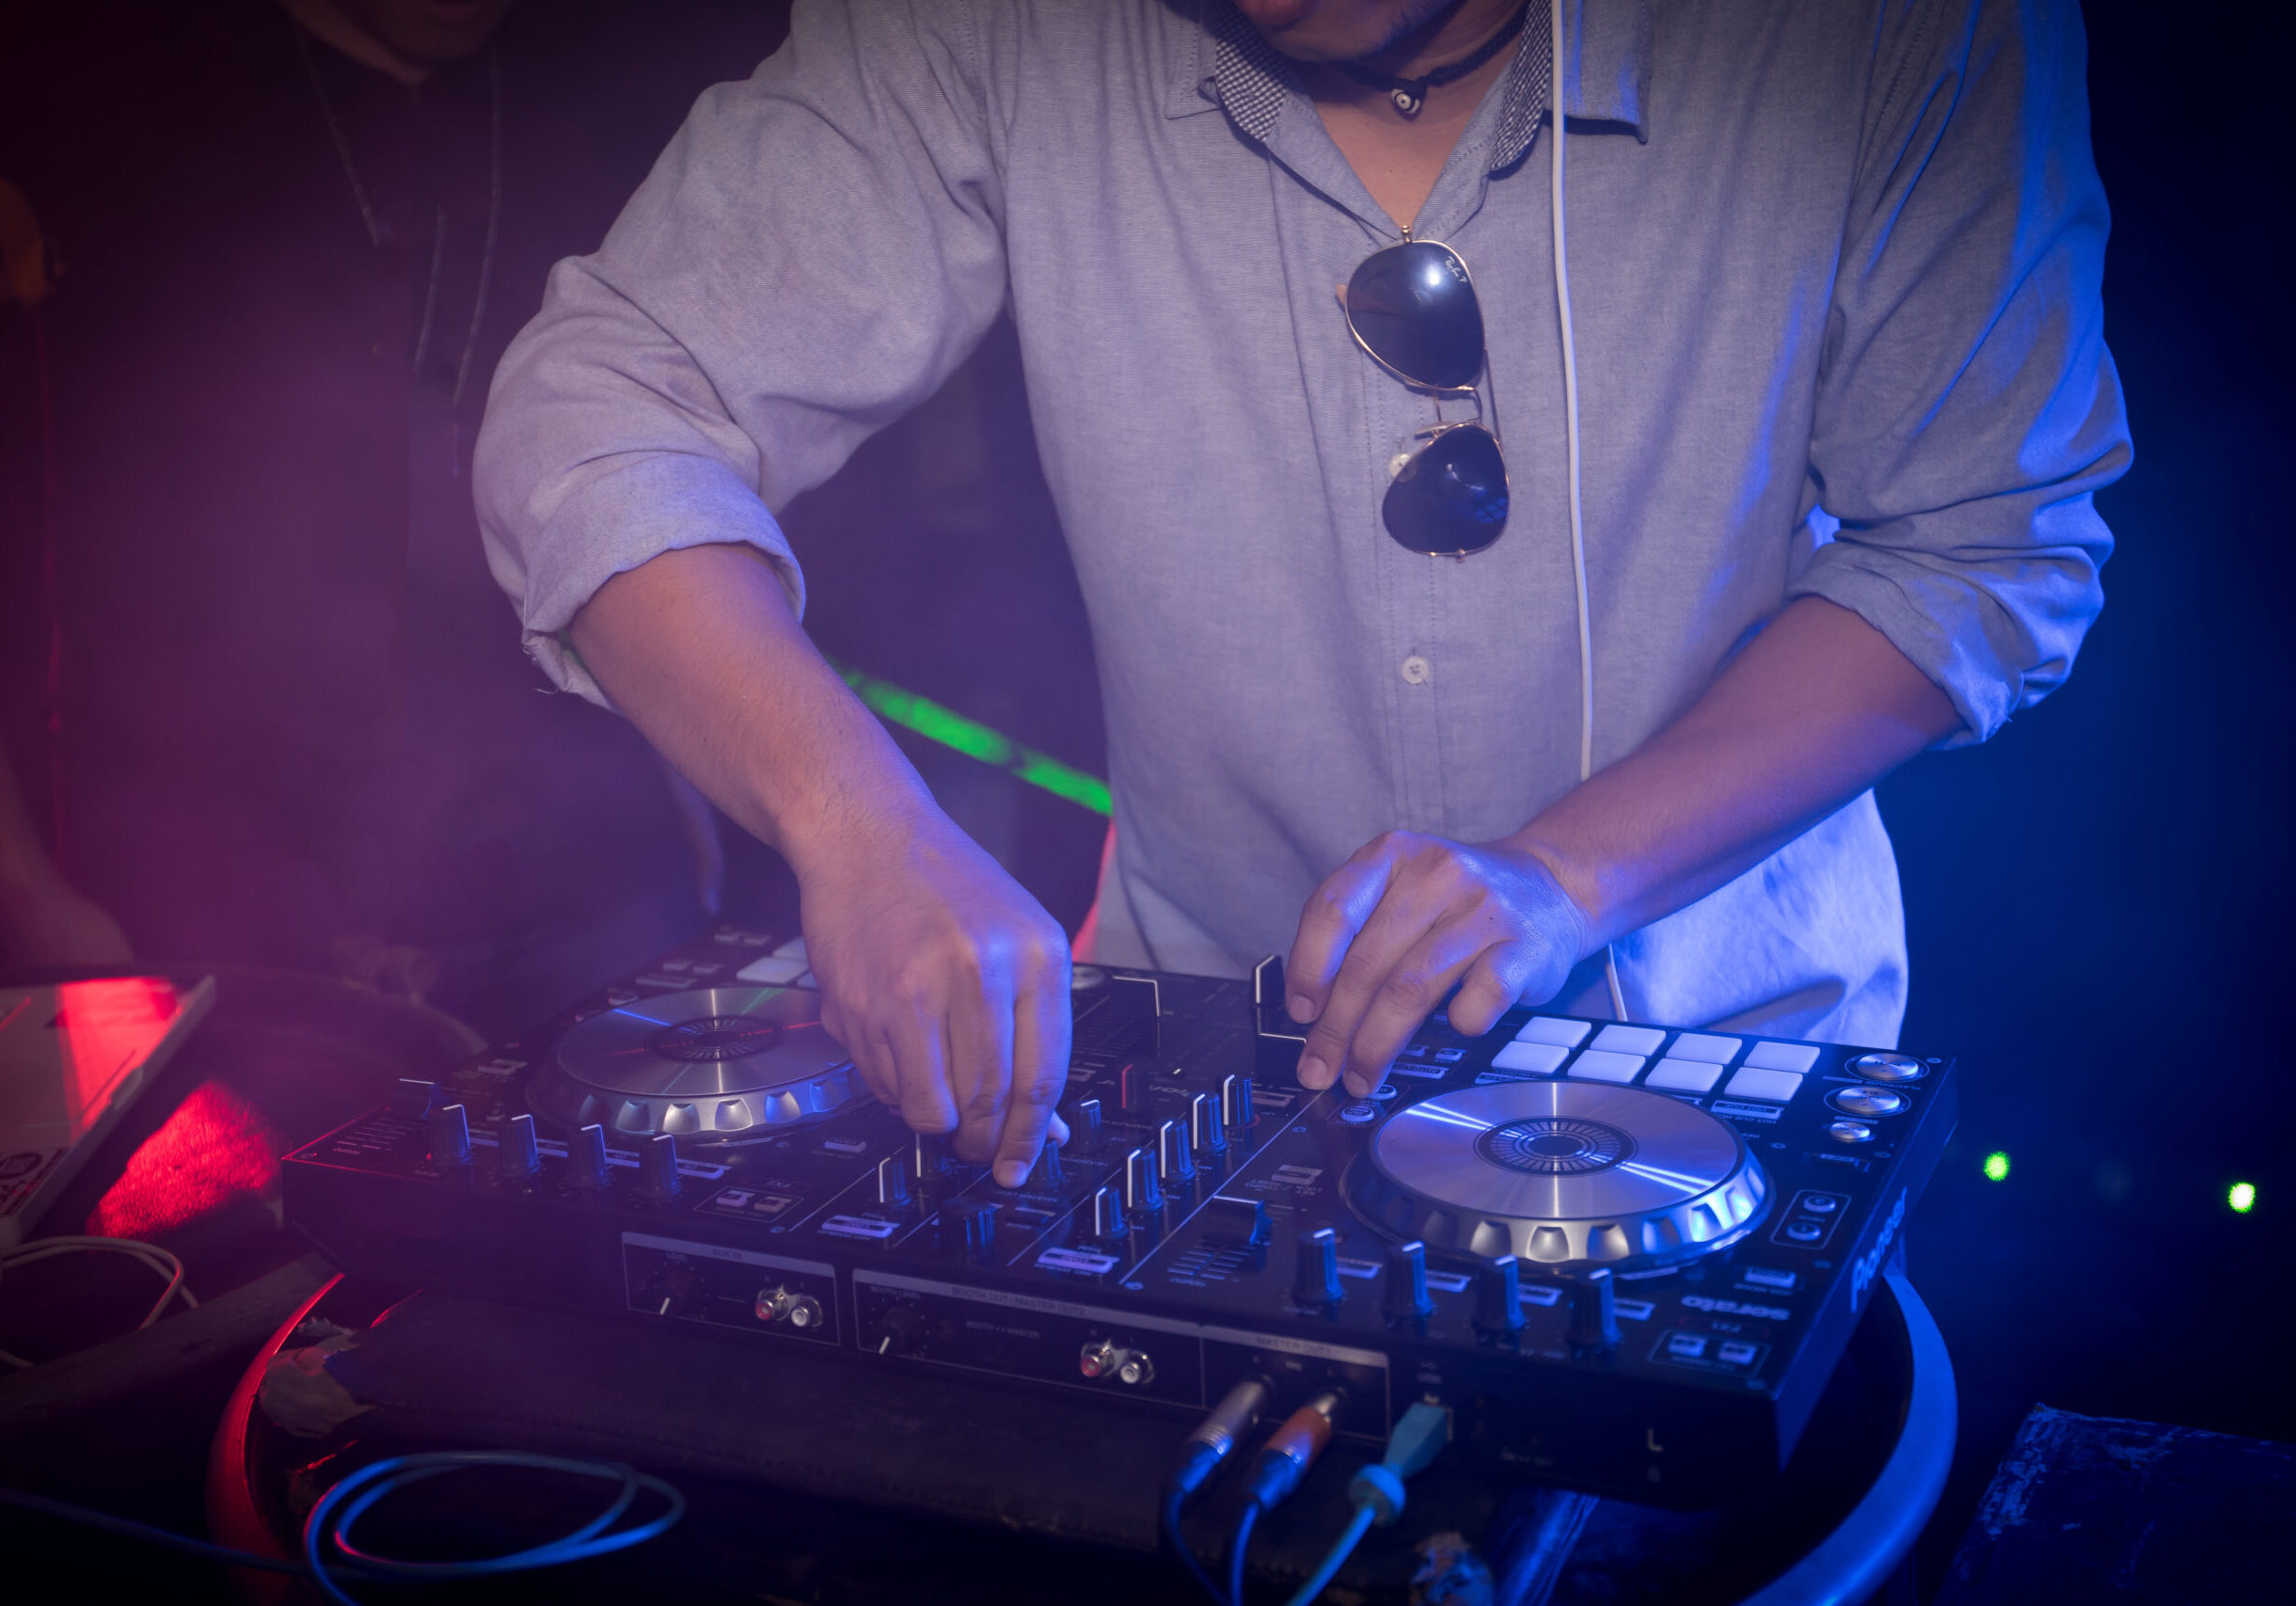 DJ playing turntable music on night club party